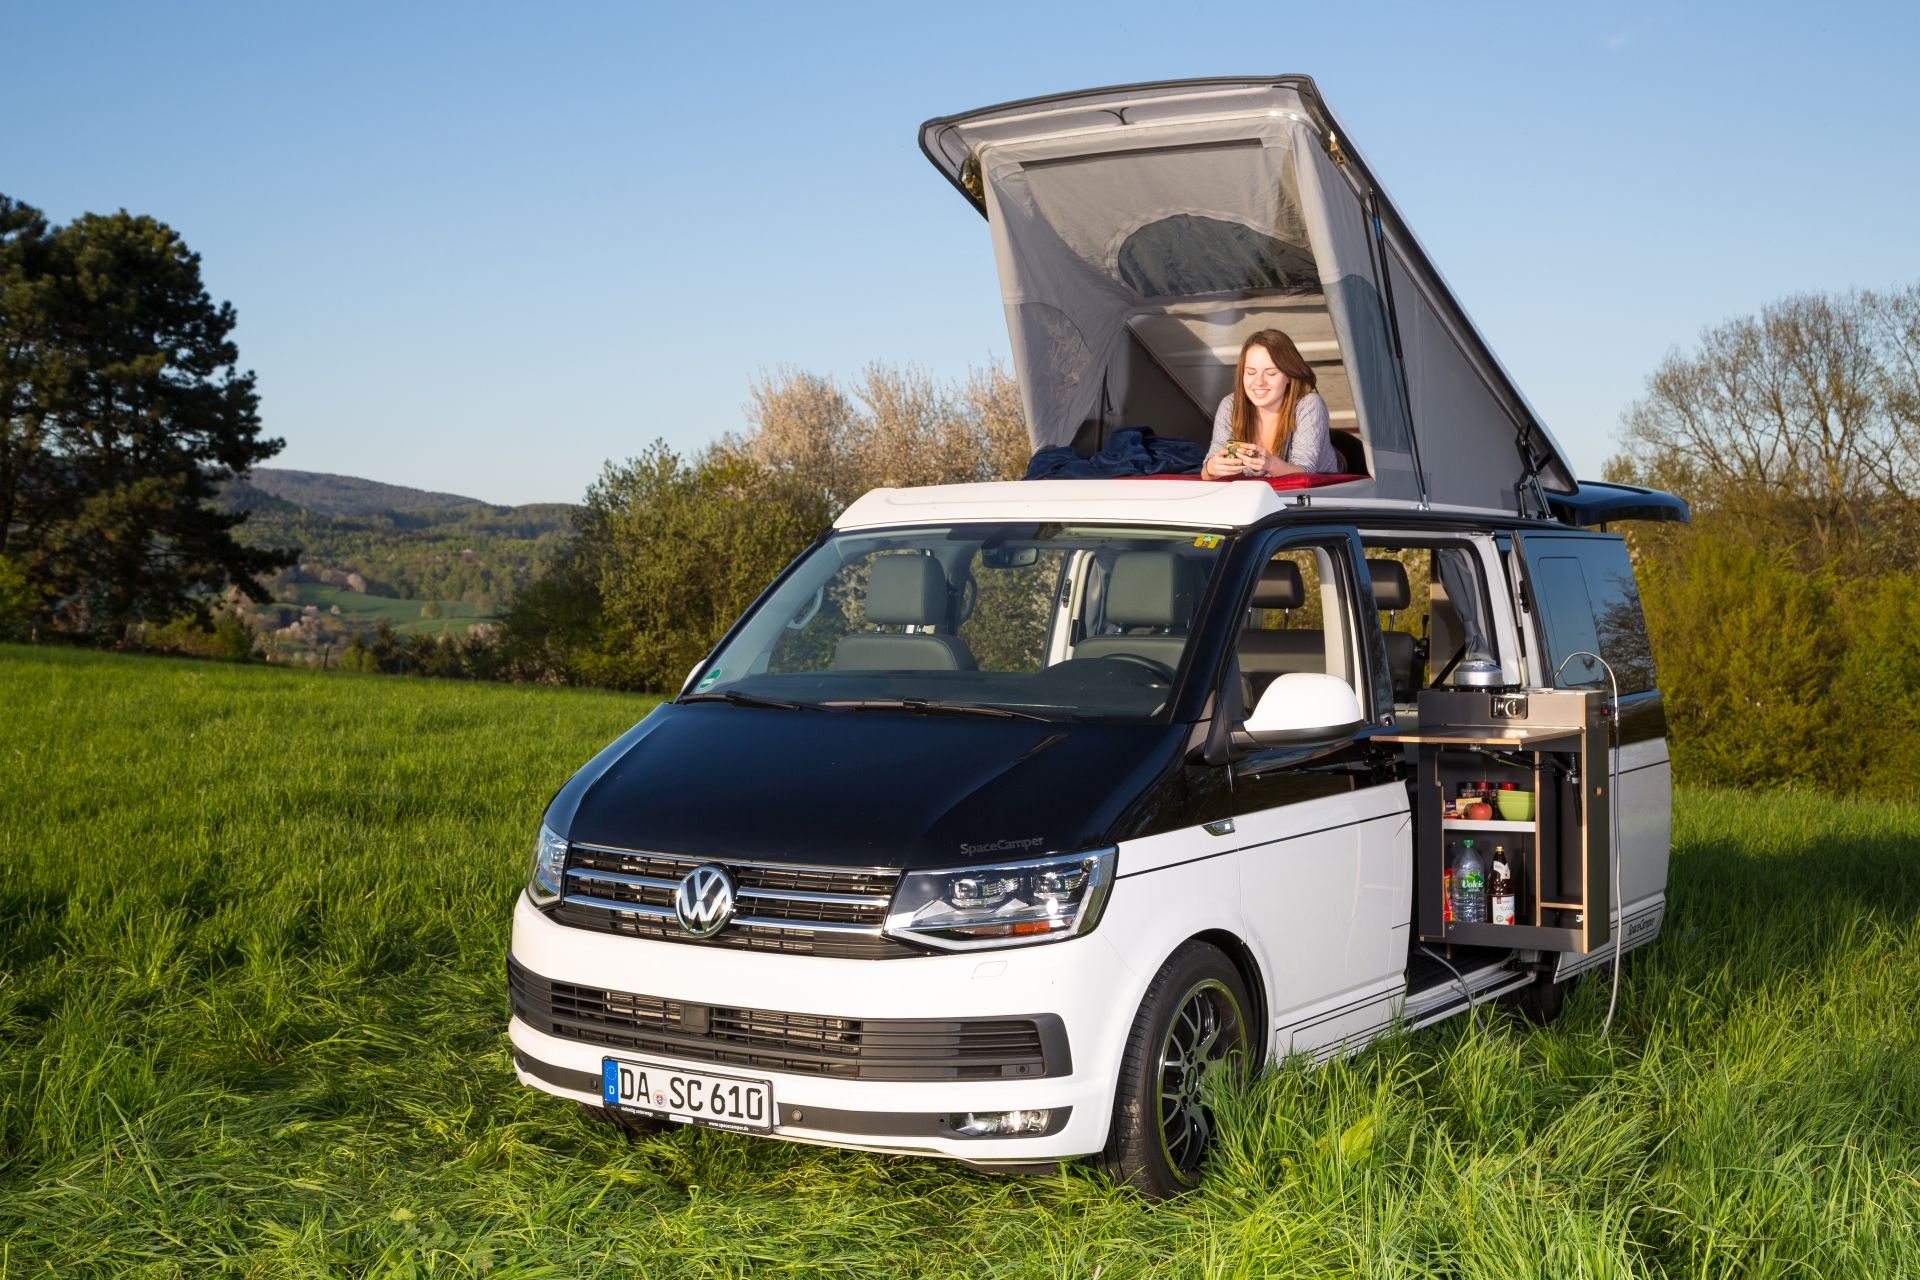 dachoptionen der spacecamper vw t6 camping ausbau. Black Bedroom Furniture Sets. Home Design Ideas